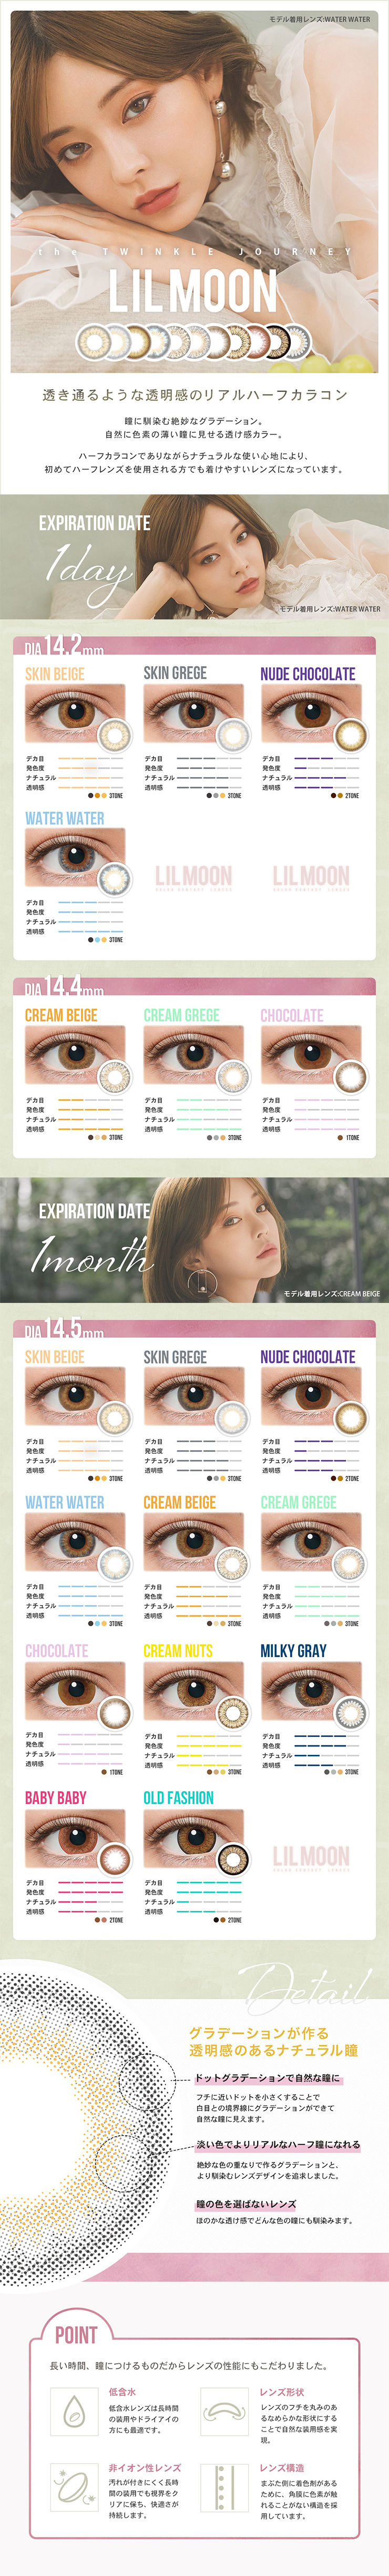 LILMOON 1day  【Color Contacts/1 Day/Prescription, No Prescription/10Lenses】